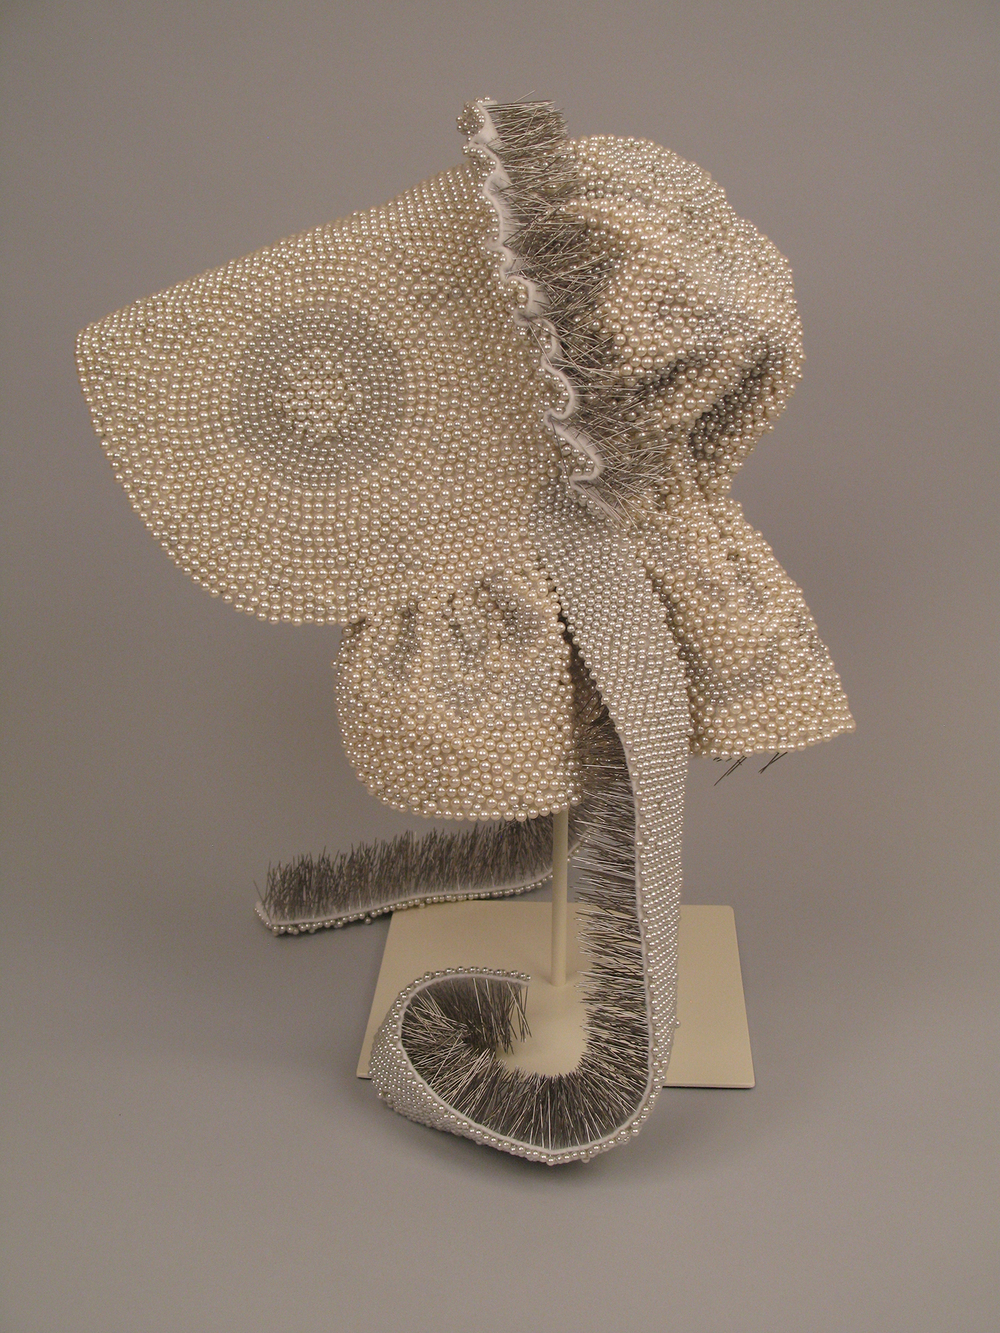 "Seer Bonnet V  14,544 pearl corsage pins, fabric, 19"" x 11"" x 13"", 2009"